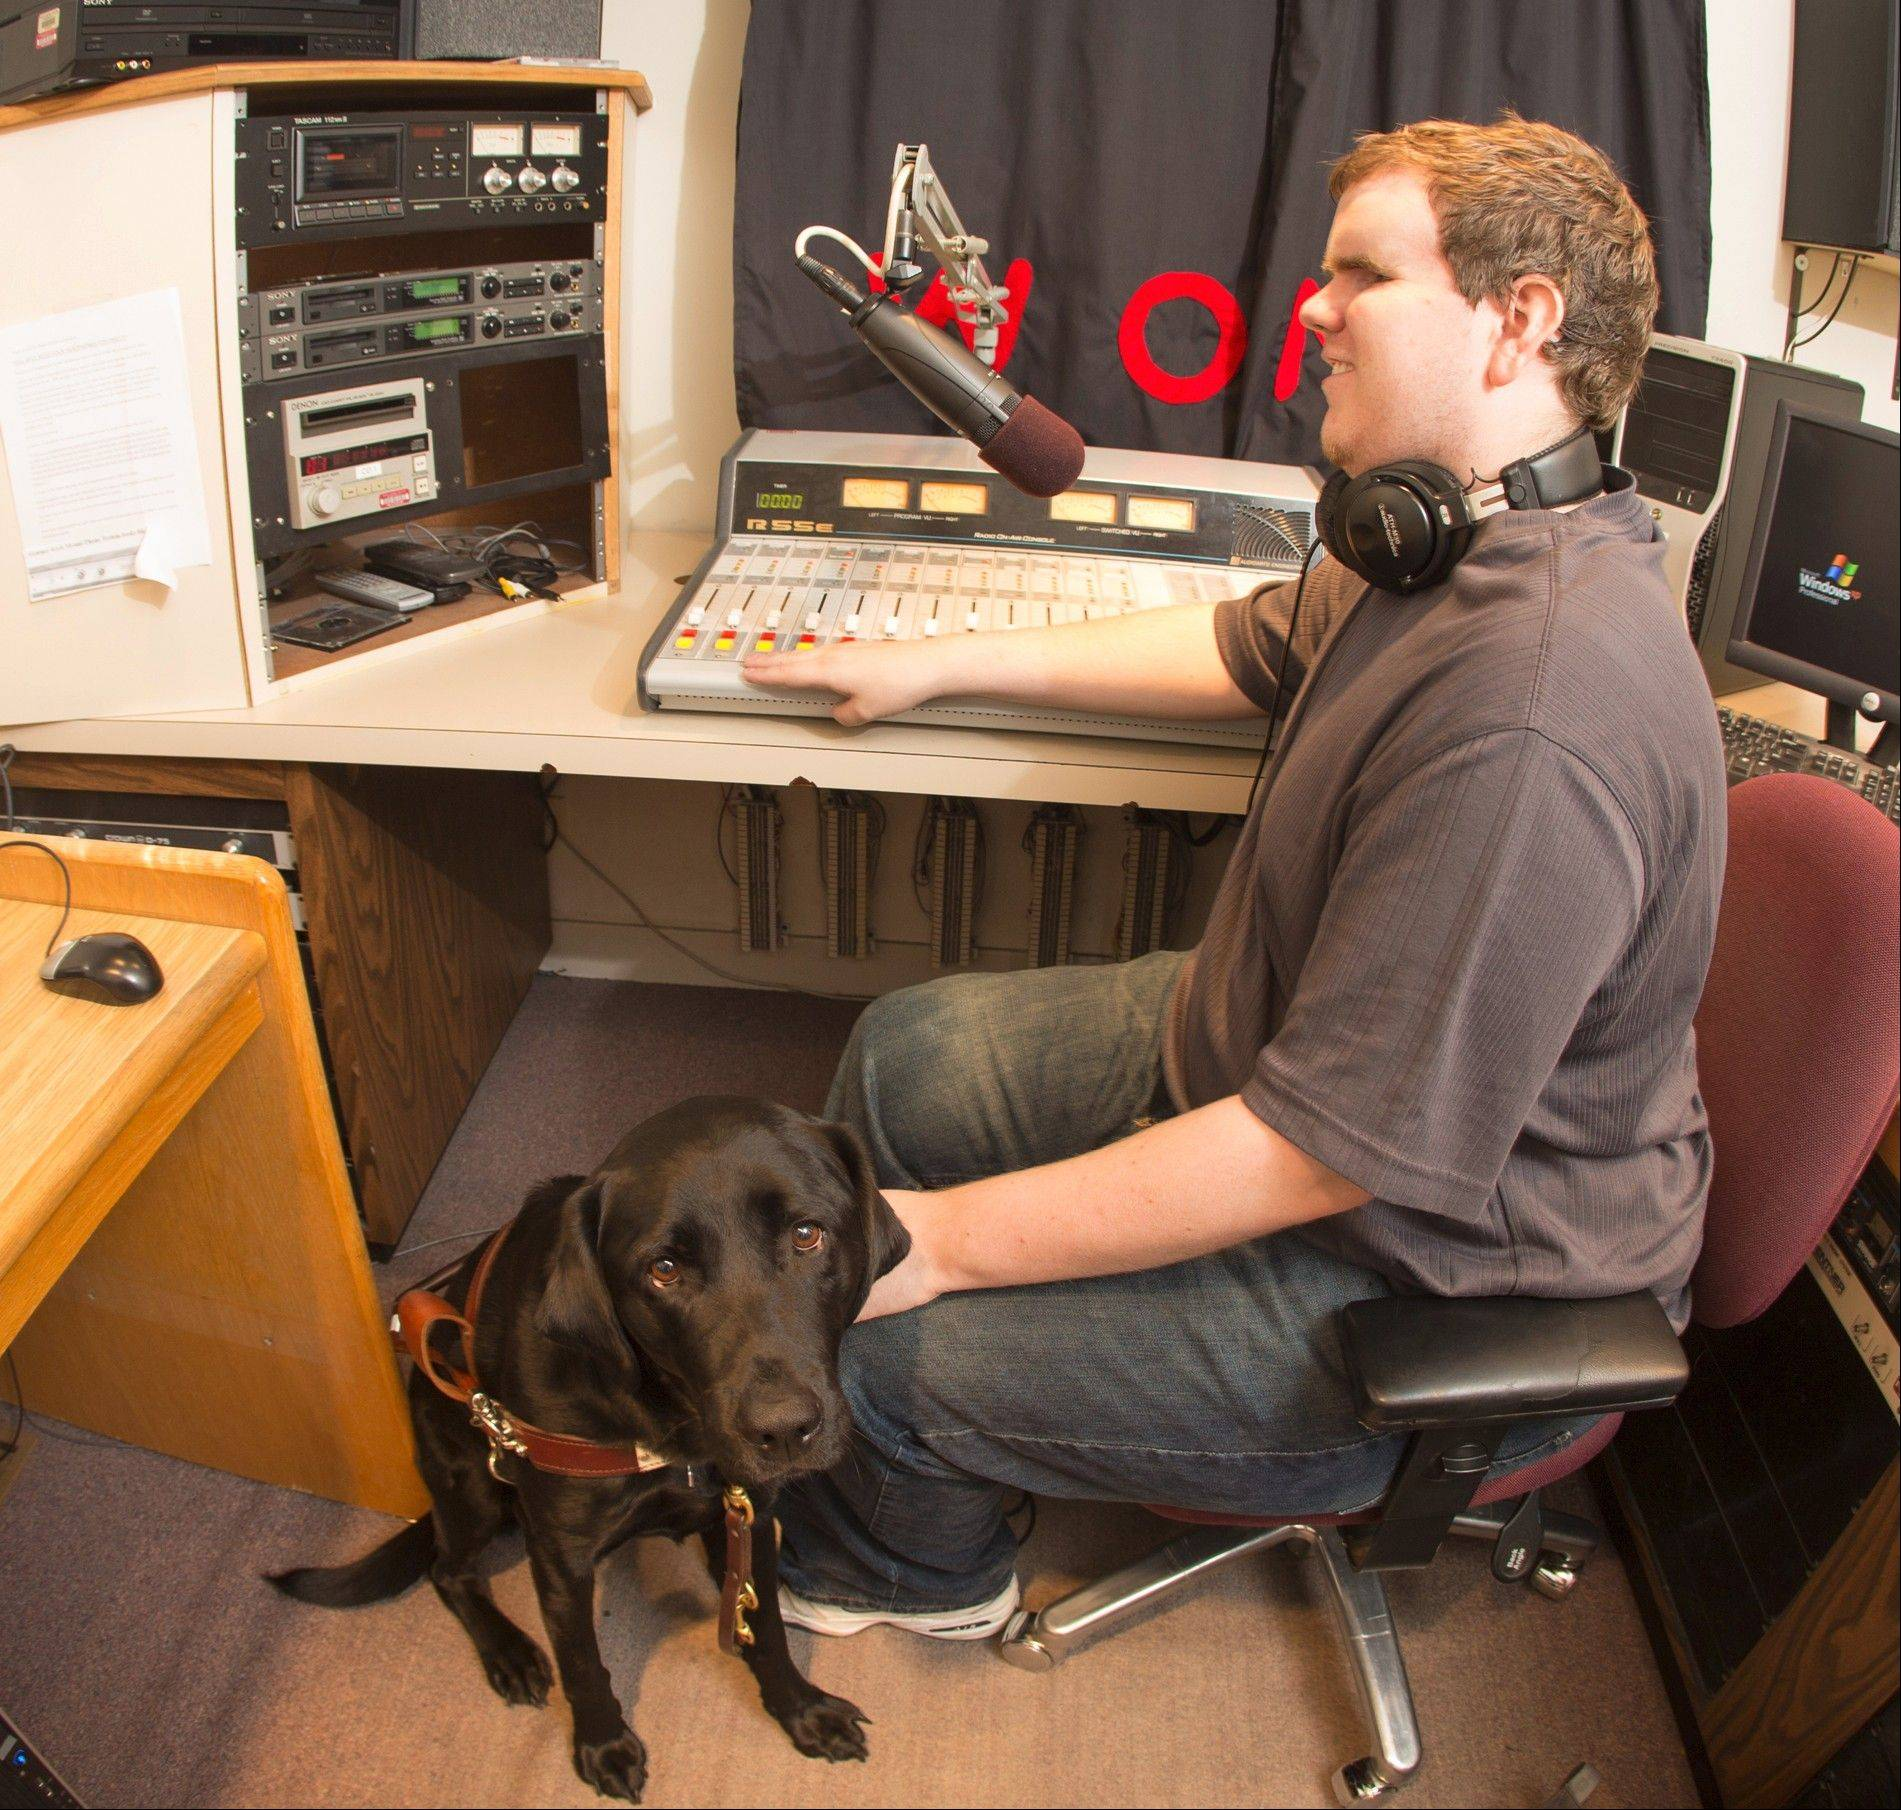 Ryan Henders, a North Central College senior and resident of Arlington Heights, negotiates student life with the help of his black lab Irby because of a rare eye disease. He is majoring in broadcast communication and has a show on the college-owned radio station, WONC.